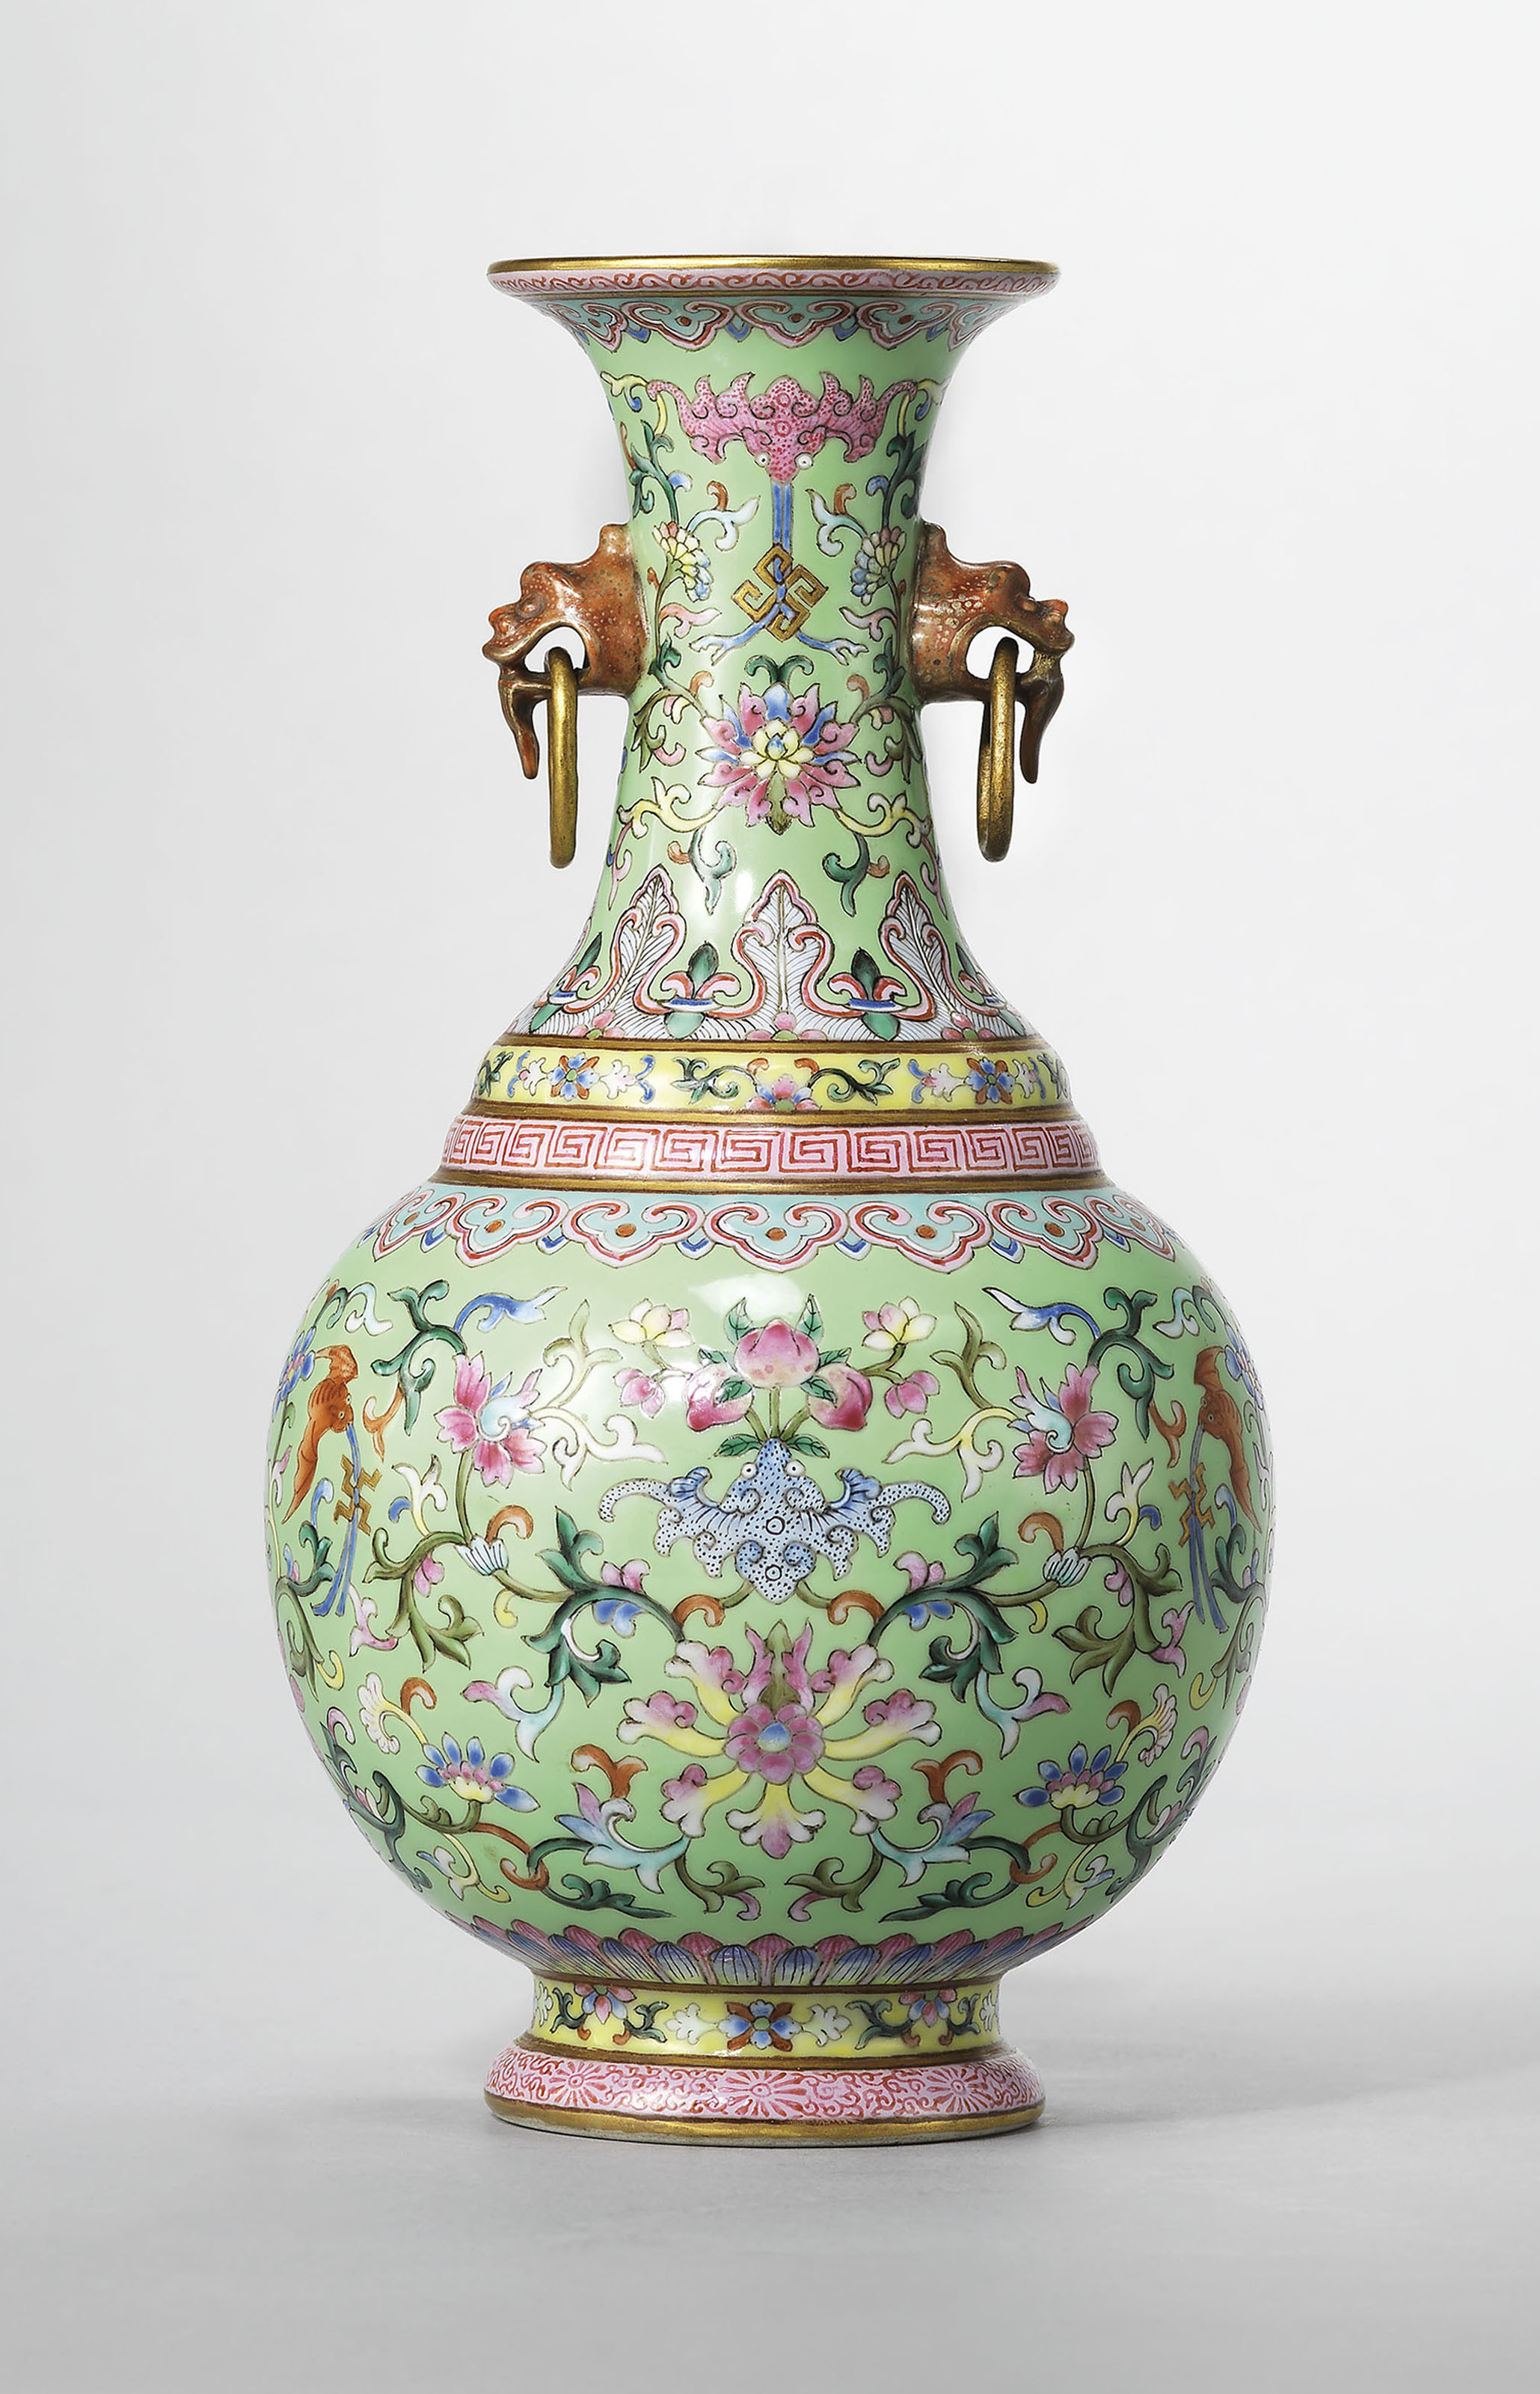 27 Recommended Chinese Meiping Vase 2021 free download chinese meiping vase of a guide to the symbolism of flowers on chinese ceramics christies within a lime green ground famille rose twin handled vase jiaqing six character